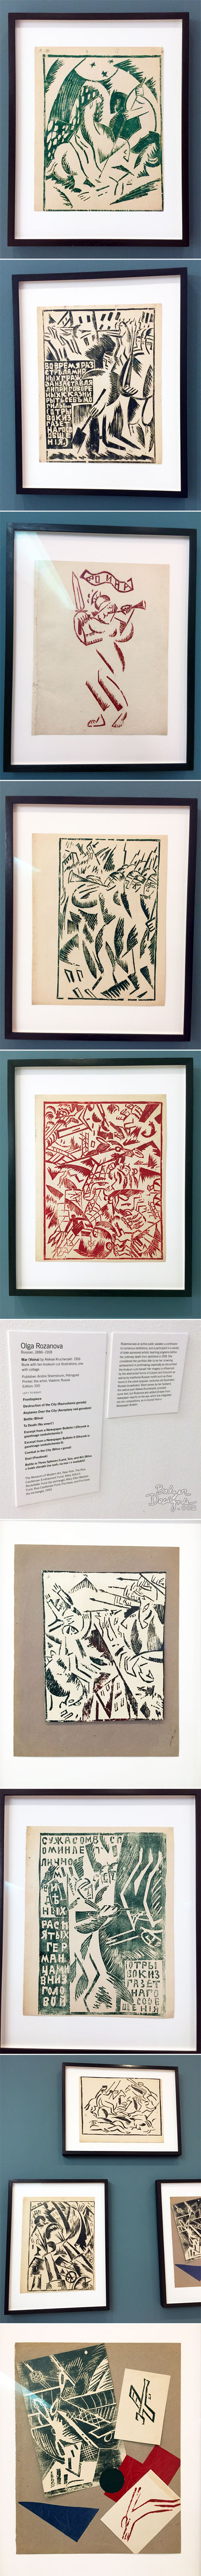 From the Balzer Designs Blog: MoMA: the Rise of the Russian Avant-Garde